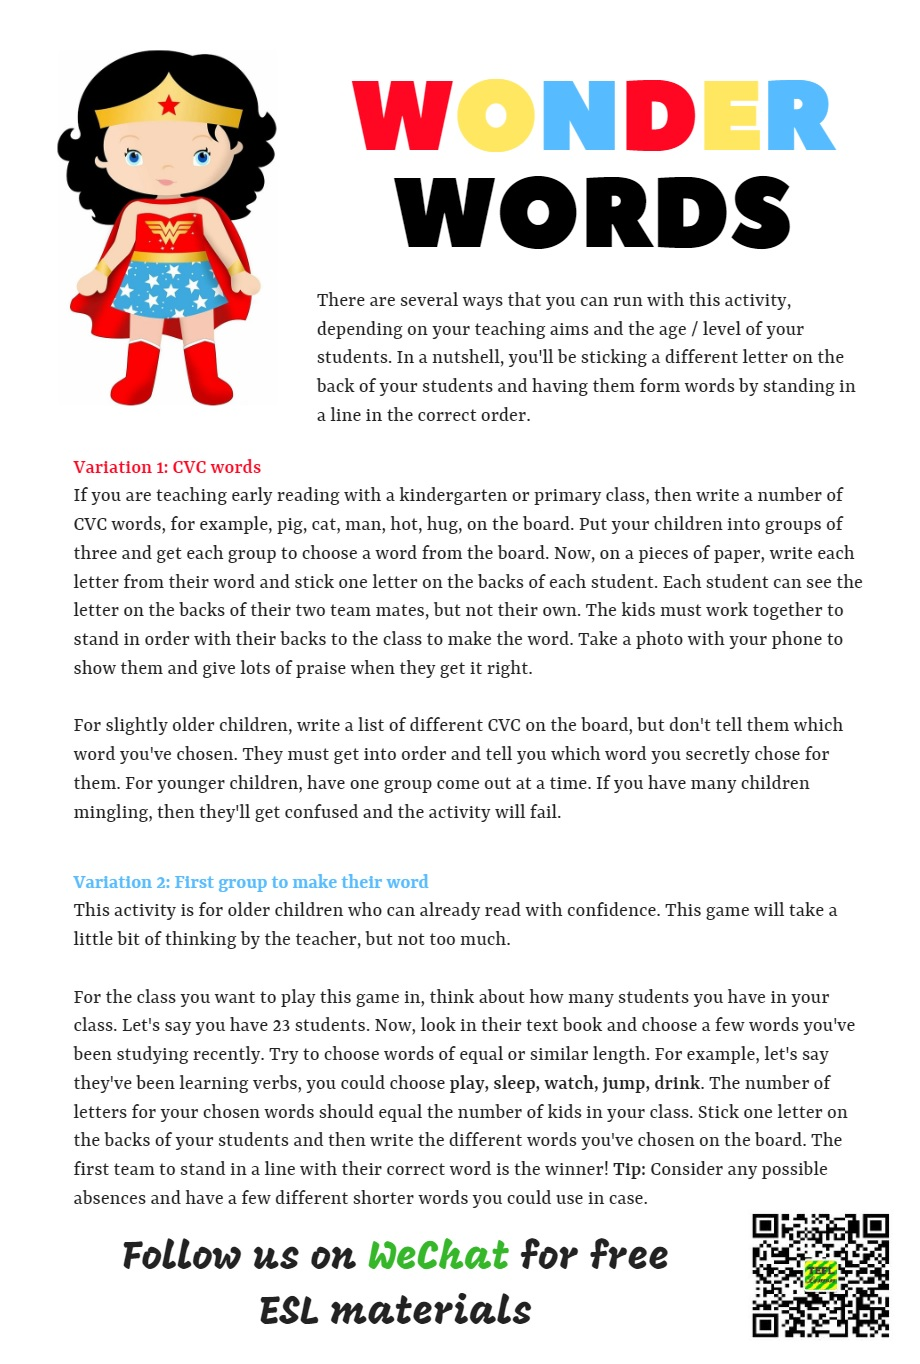 Wonder Words page.jpg